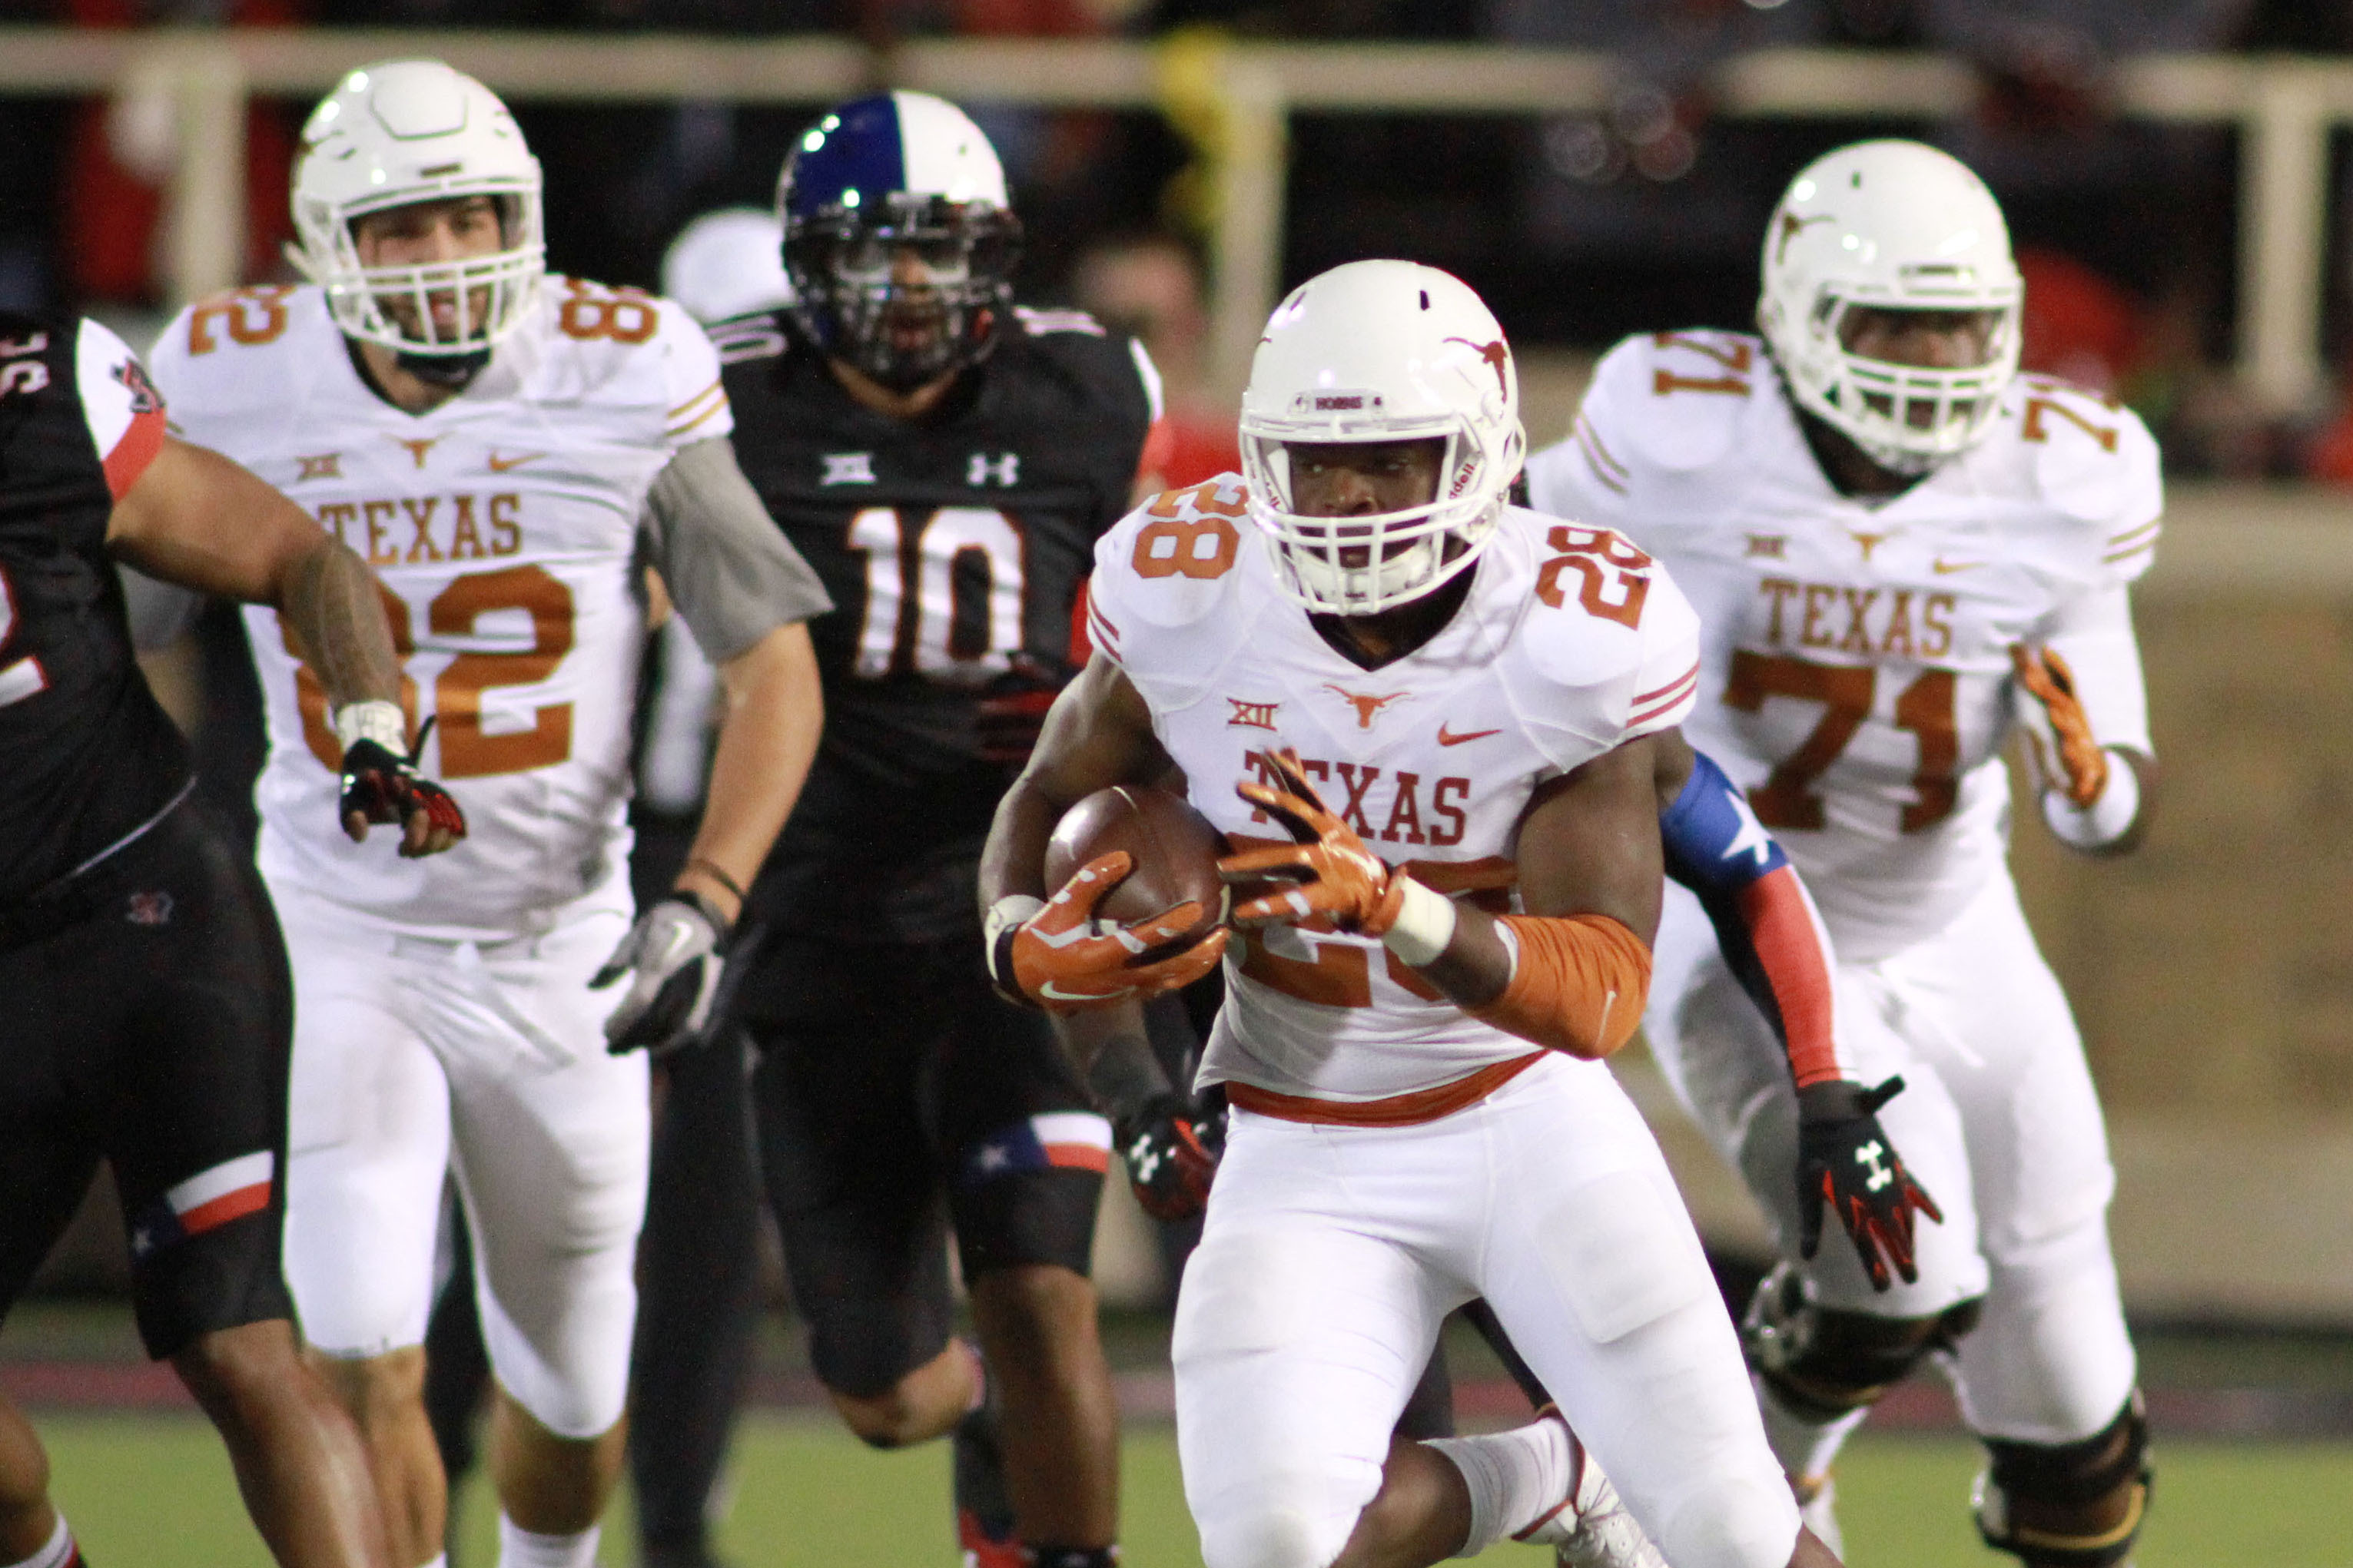 Texas Vs Texas Tech Game Grades Analysis For Longhorns And Red Raiders Bleacher Report Latest News Videos And Highlights